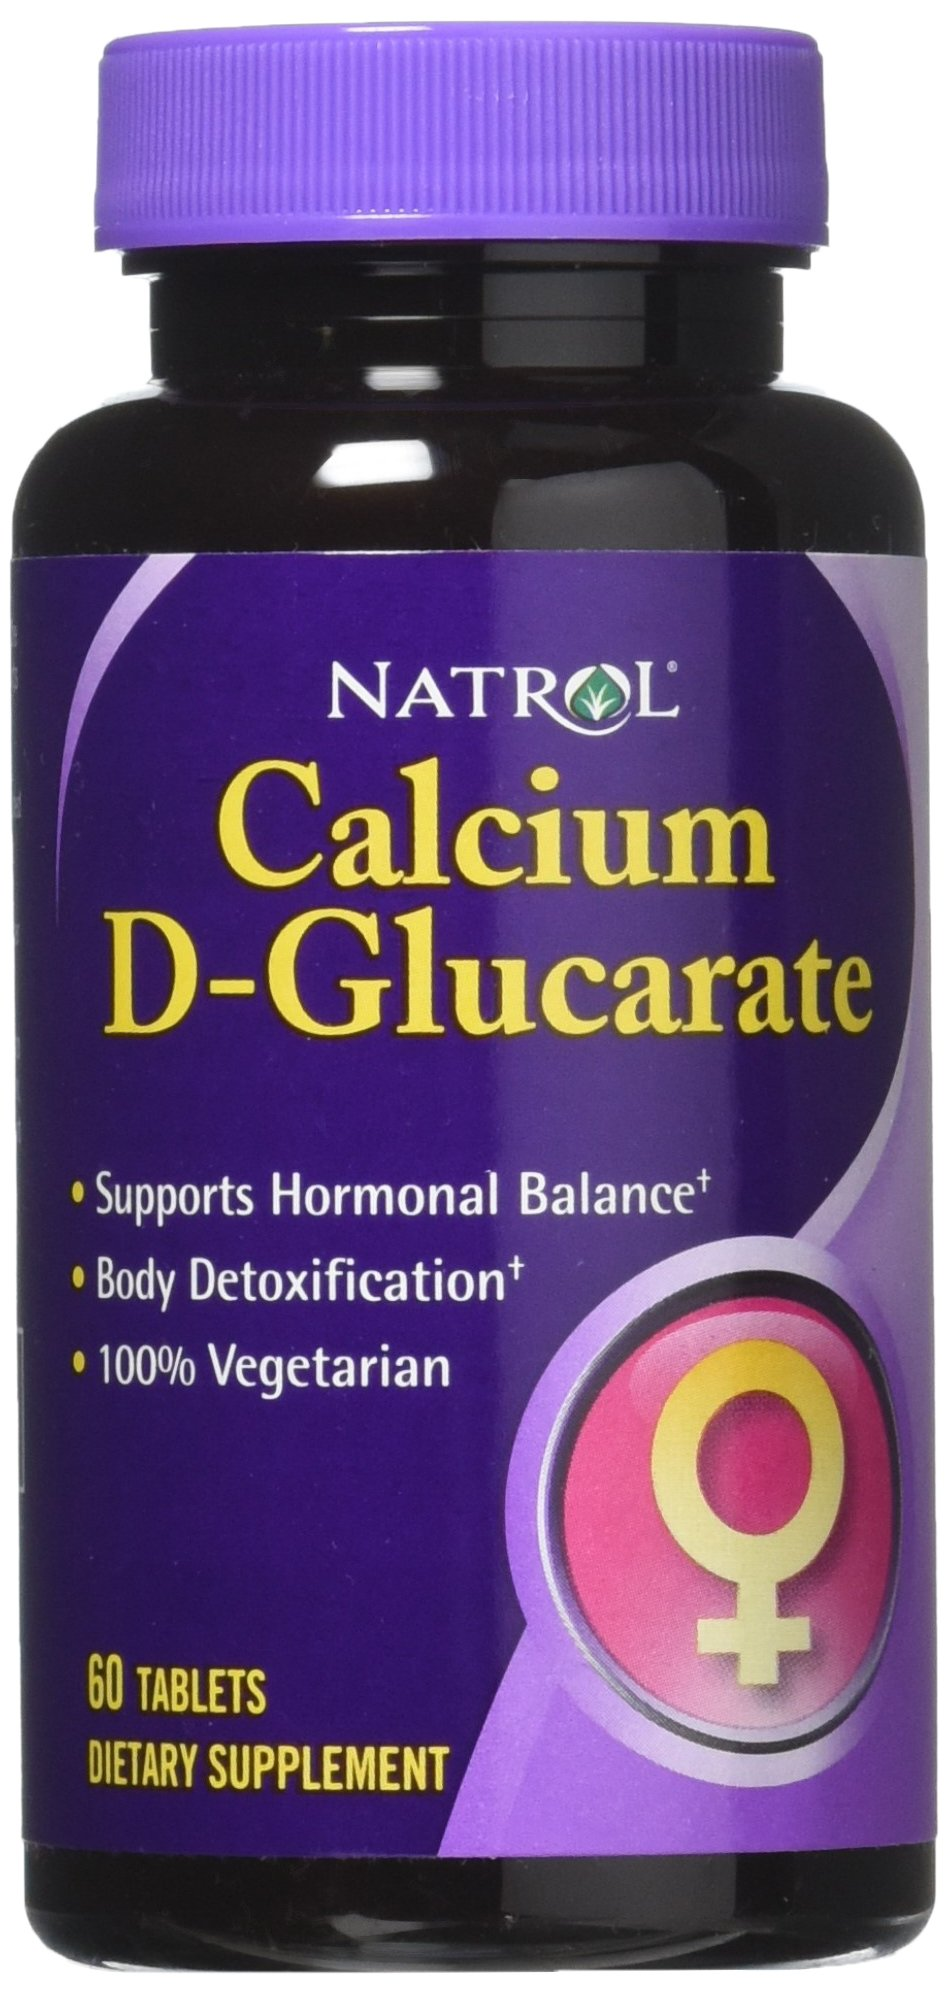 Natrol Calcium D-Glucarate Tablets, 250mg, 60 Count